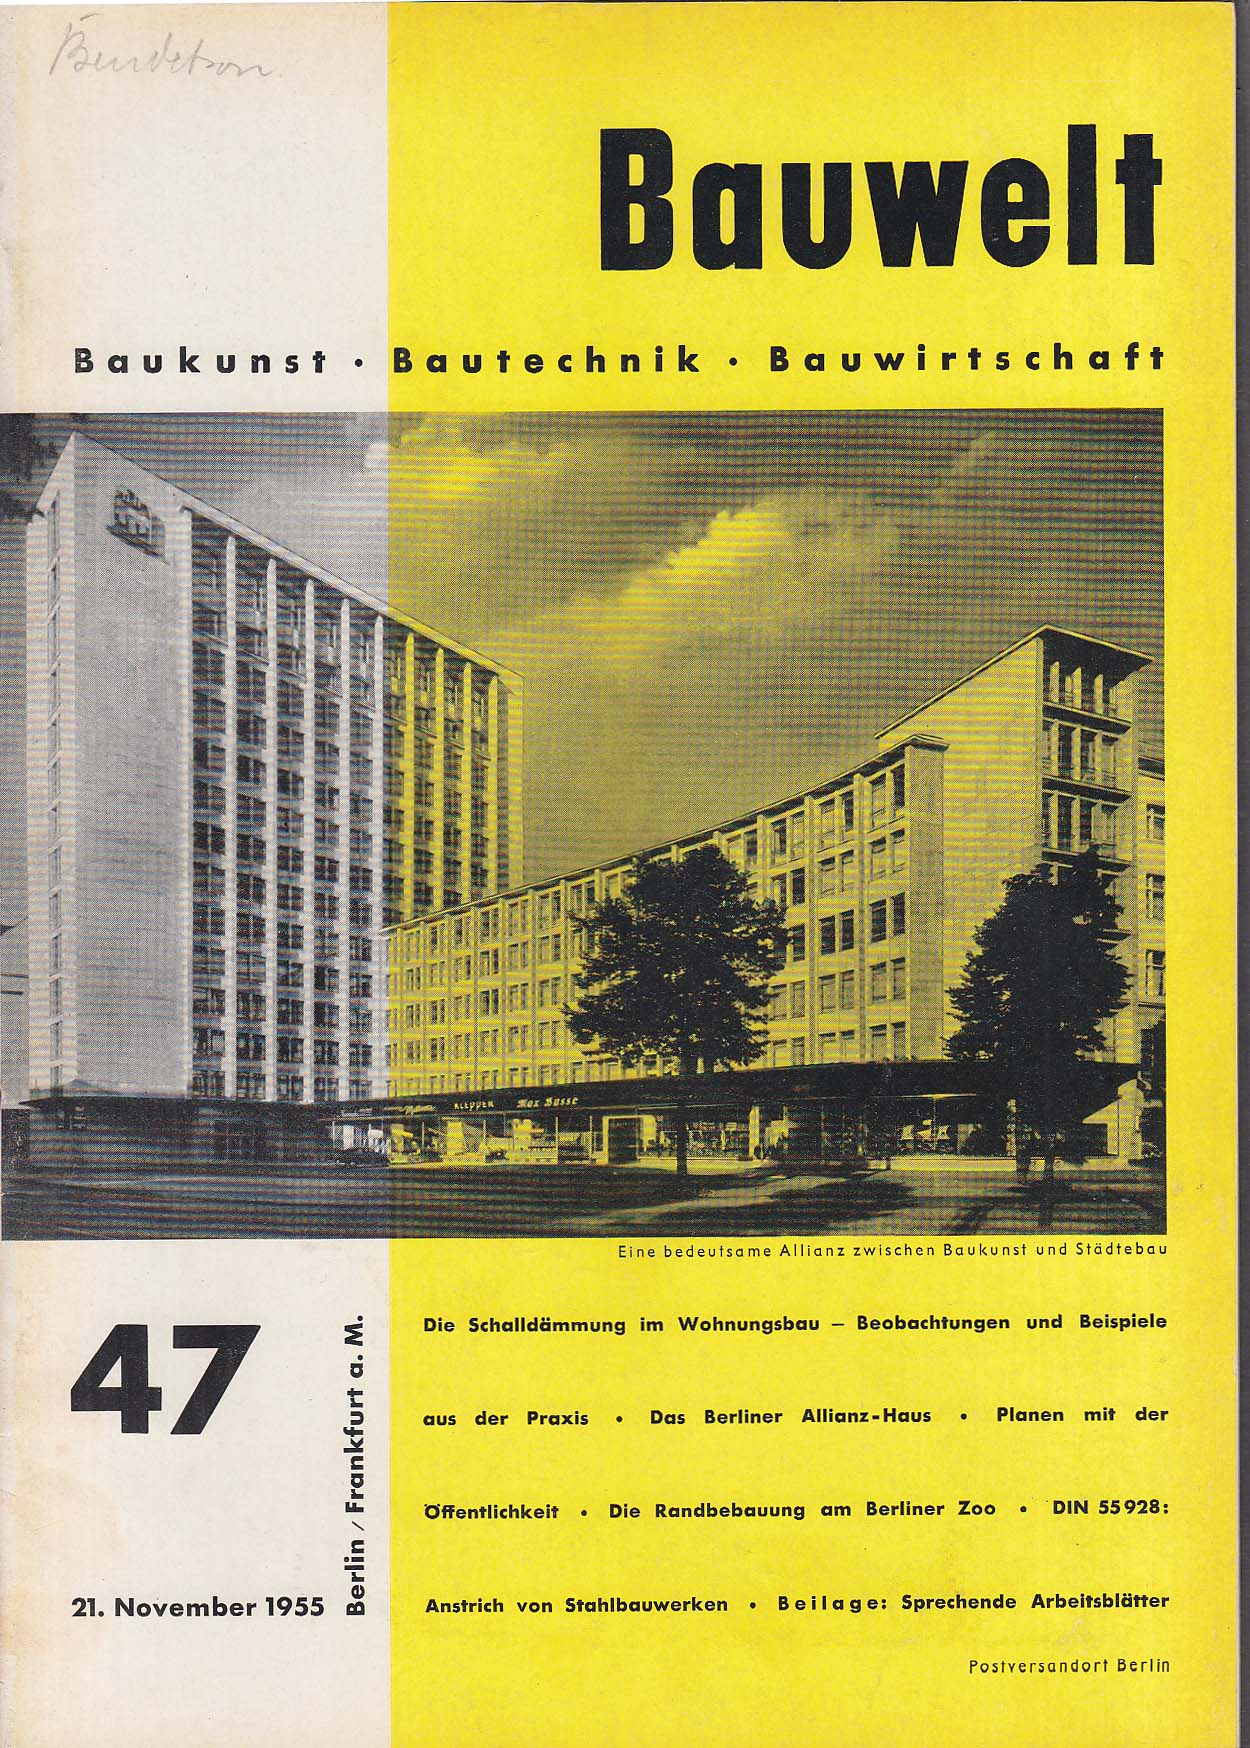 Bauwelt German architecture magazine 11/21/1955 47